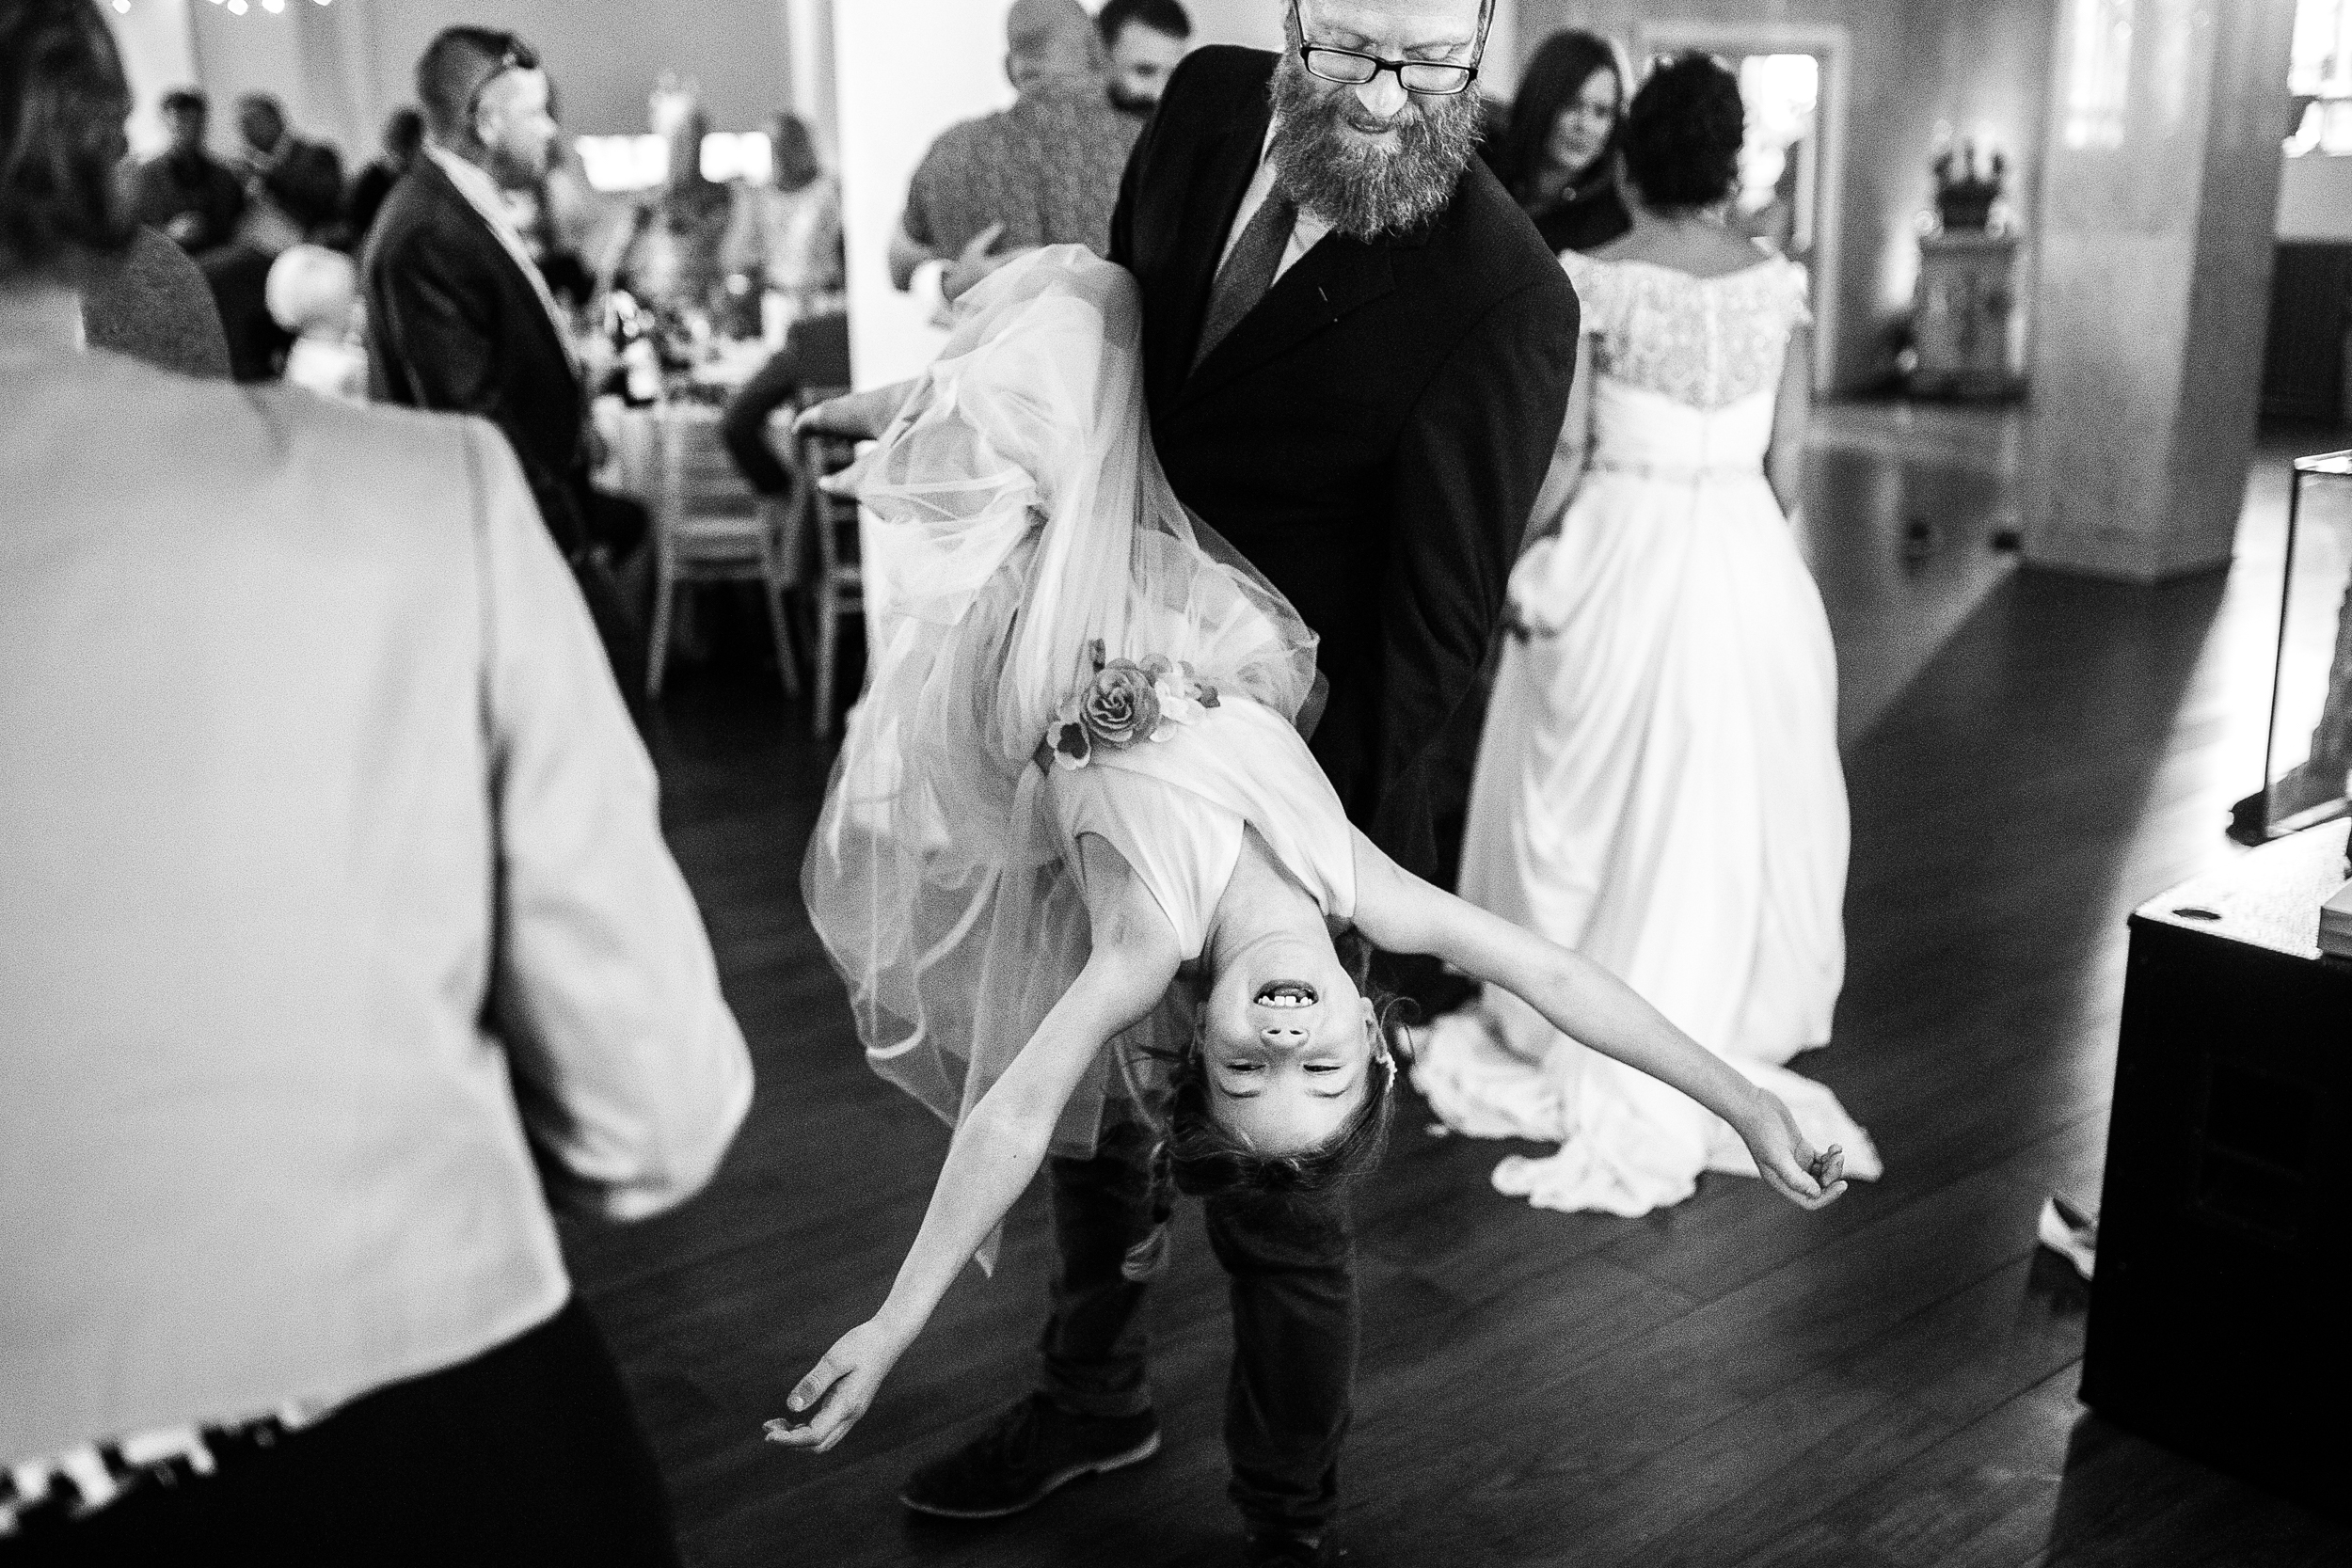 a girl is held upside down on the dancefloor. creative wedding photography north yorkshire teesside north east + stop motion wedding films uk